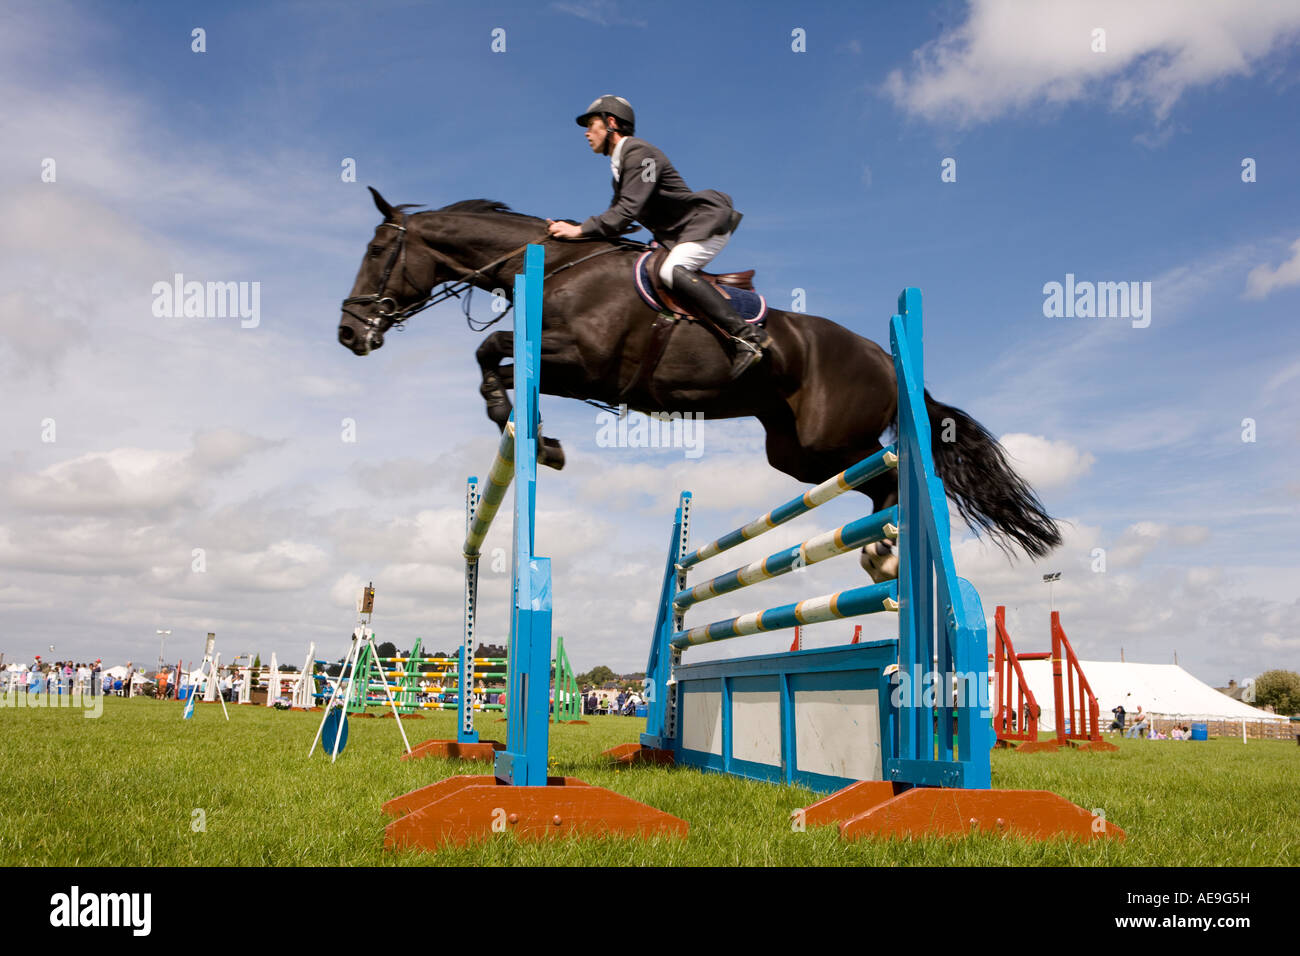 equestrian show jumping The world's jumping courses are waiting for you no matter whether it's sydney, paris, or new york: there are no limits to you and your horse's adventures.